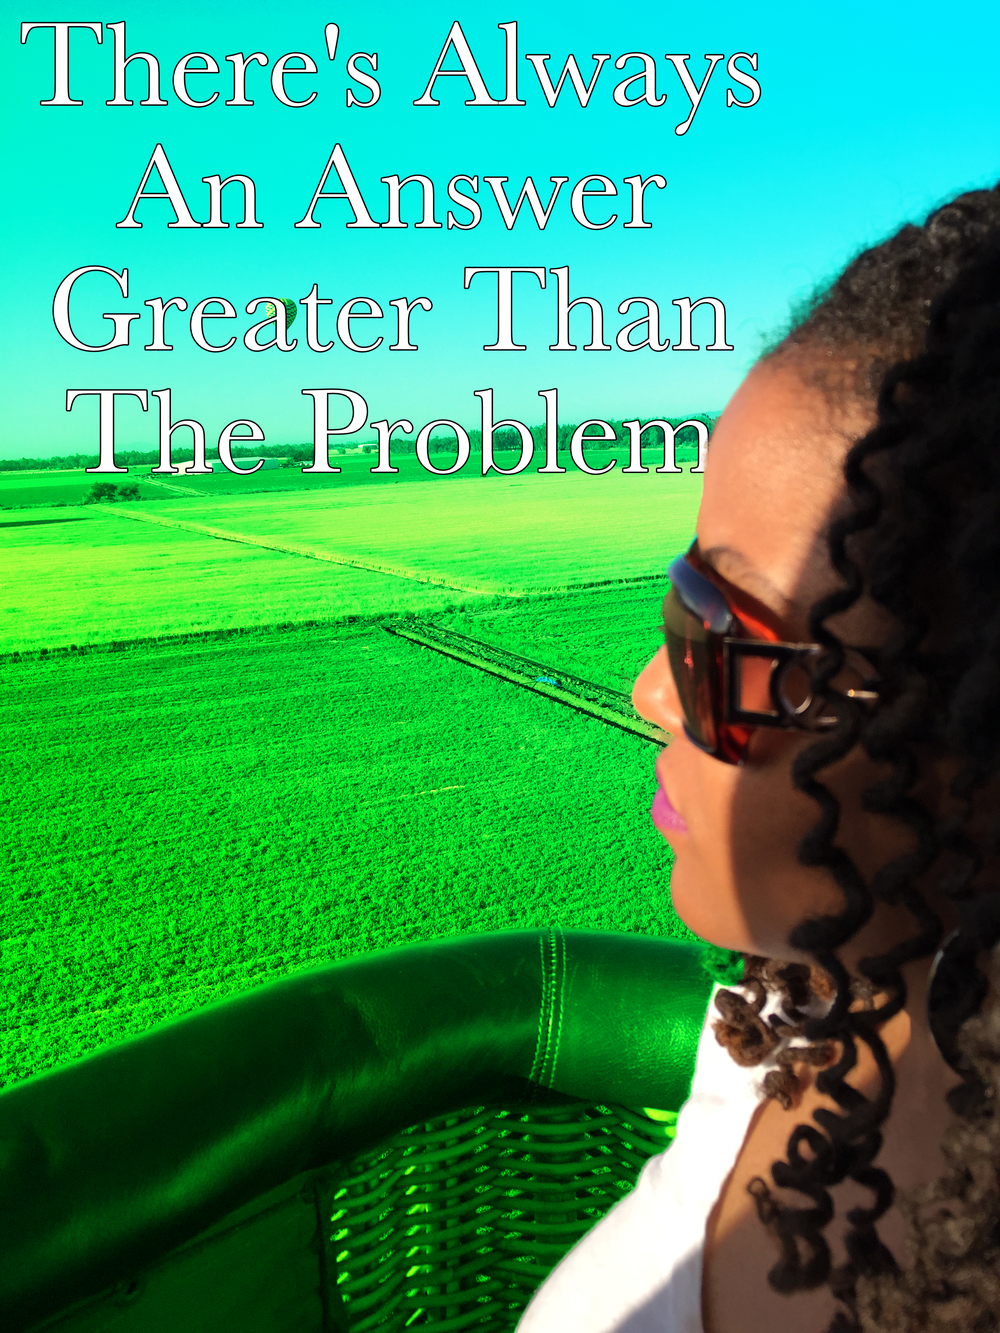 There's always an answer greater than the problem Begotten Life